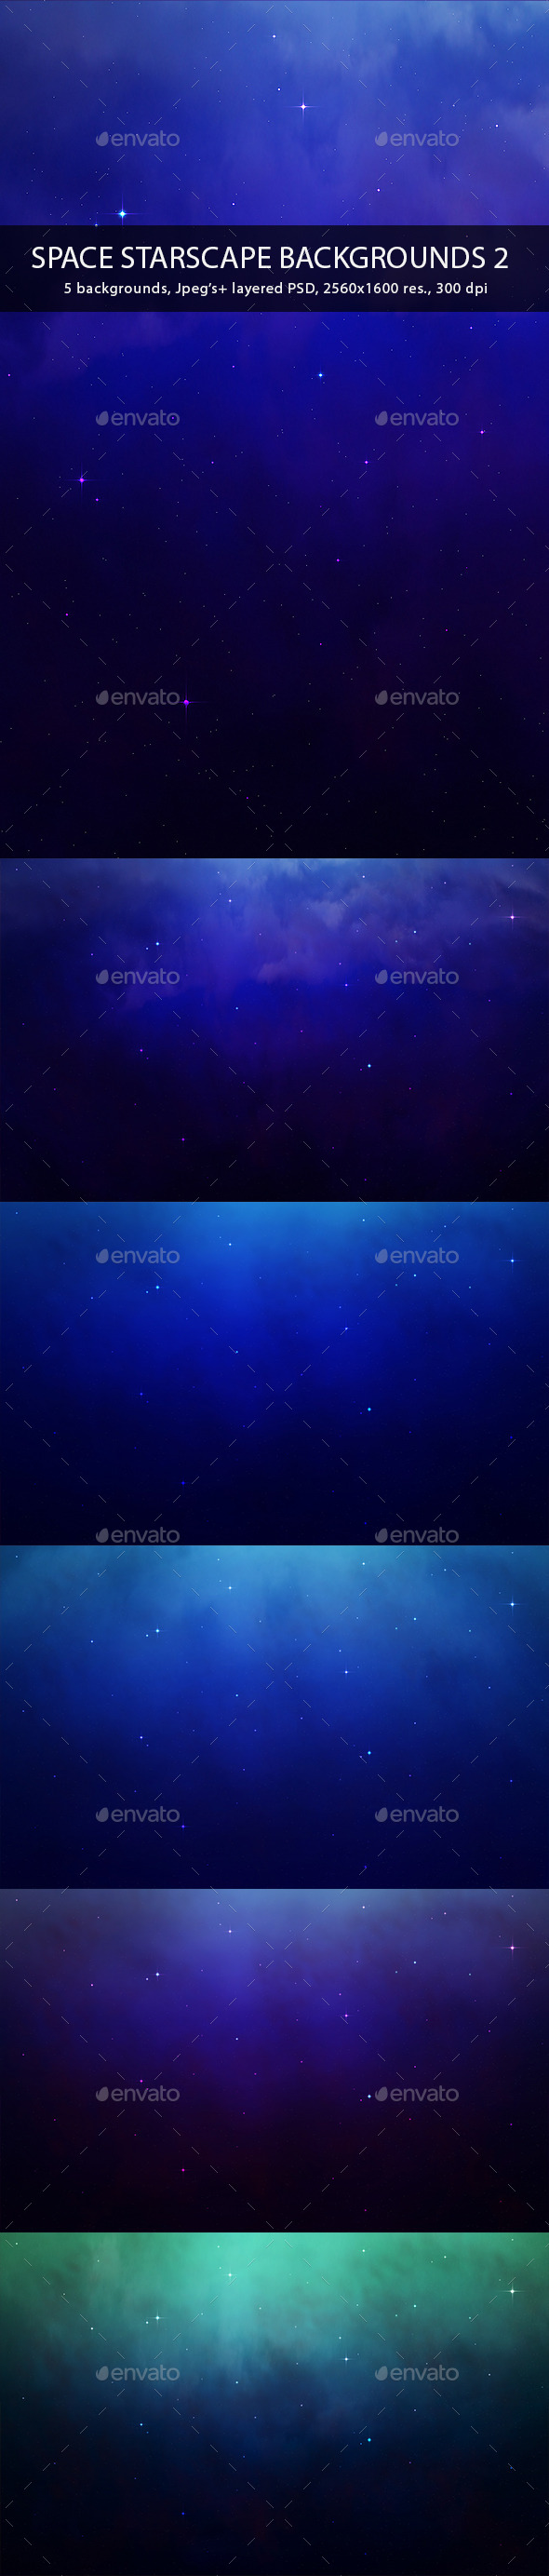 GraphicRiver Space Starscape Backgrounds 2 9601576